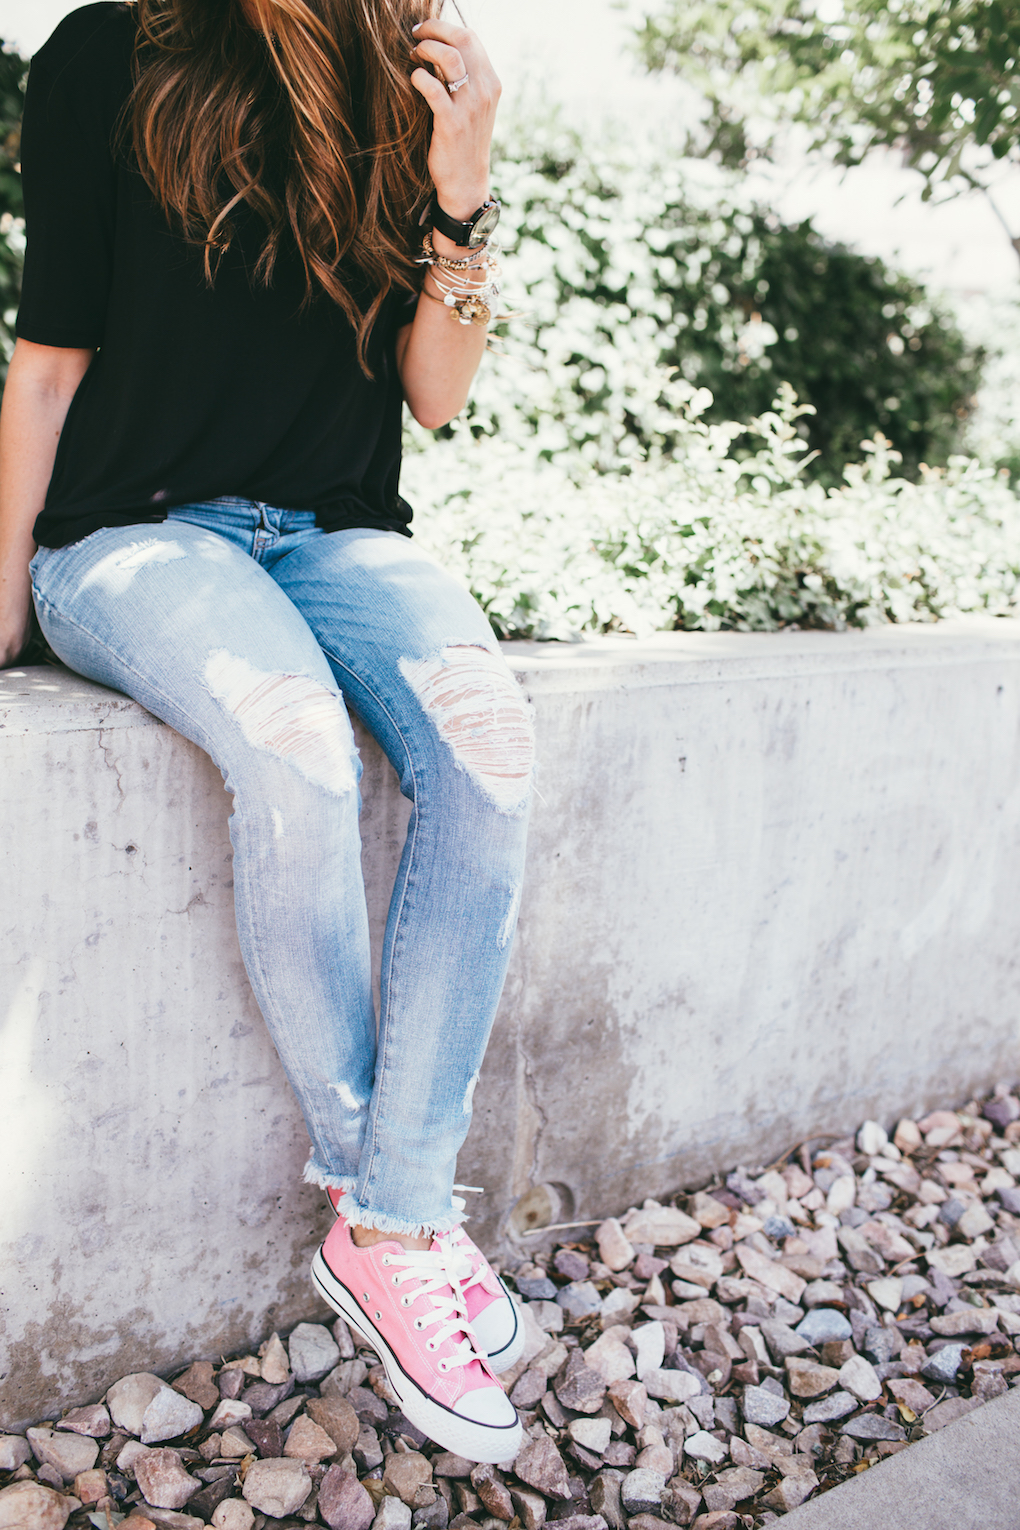 Girl in distressed denim jeans and oversized black tee shirt with loosely curled hair and pink converse